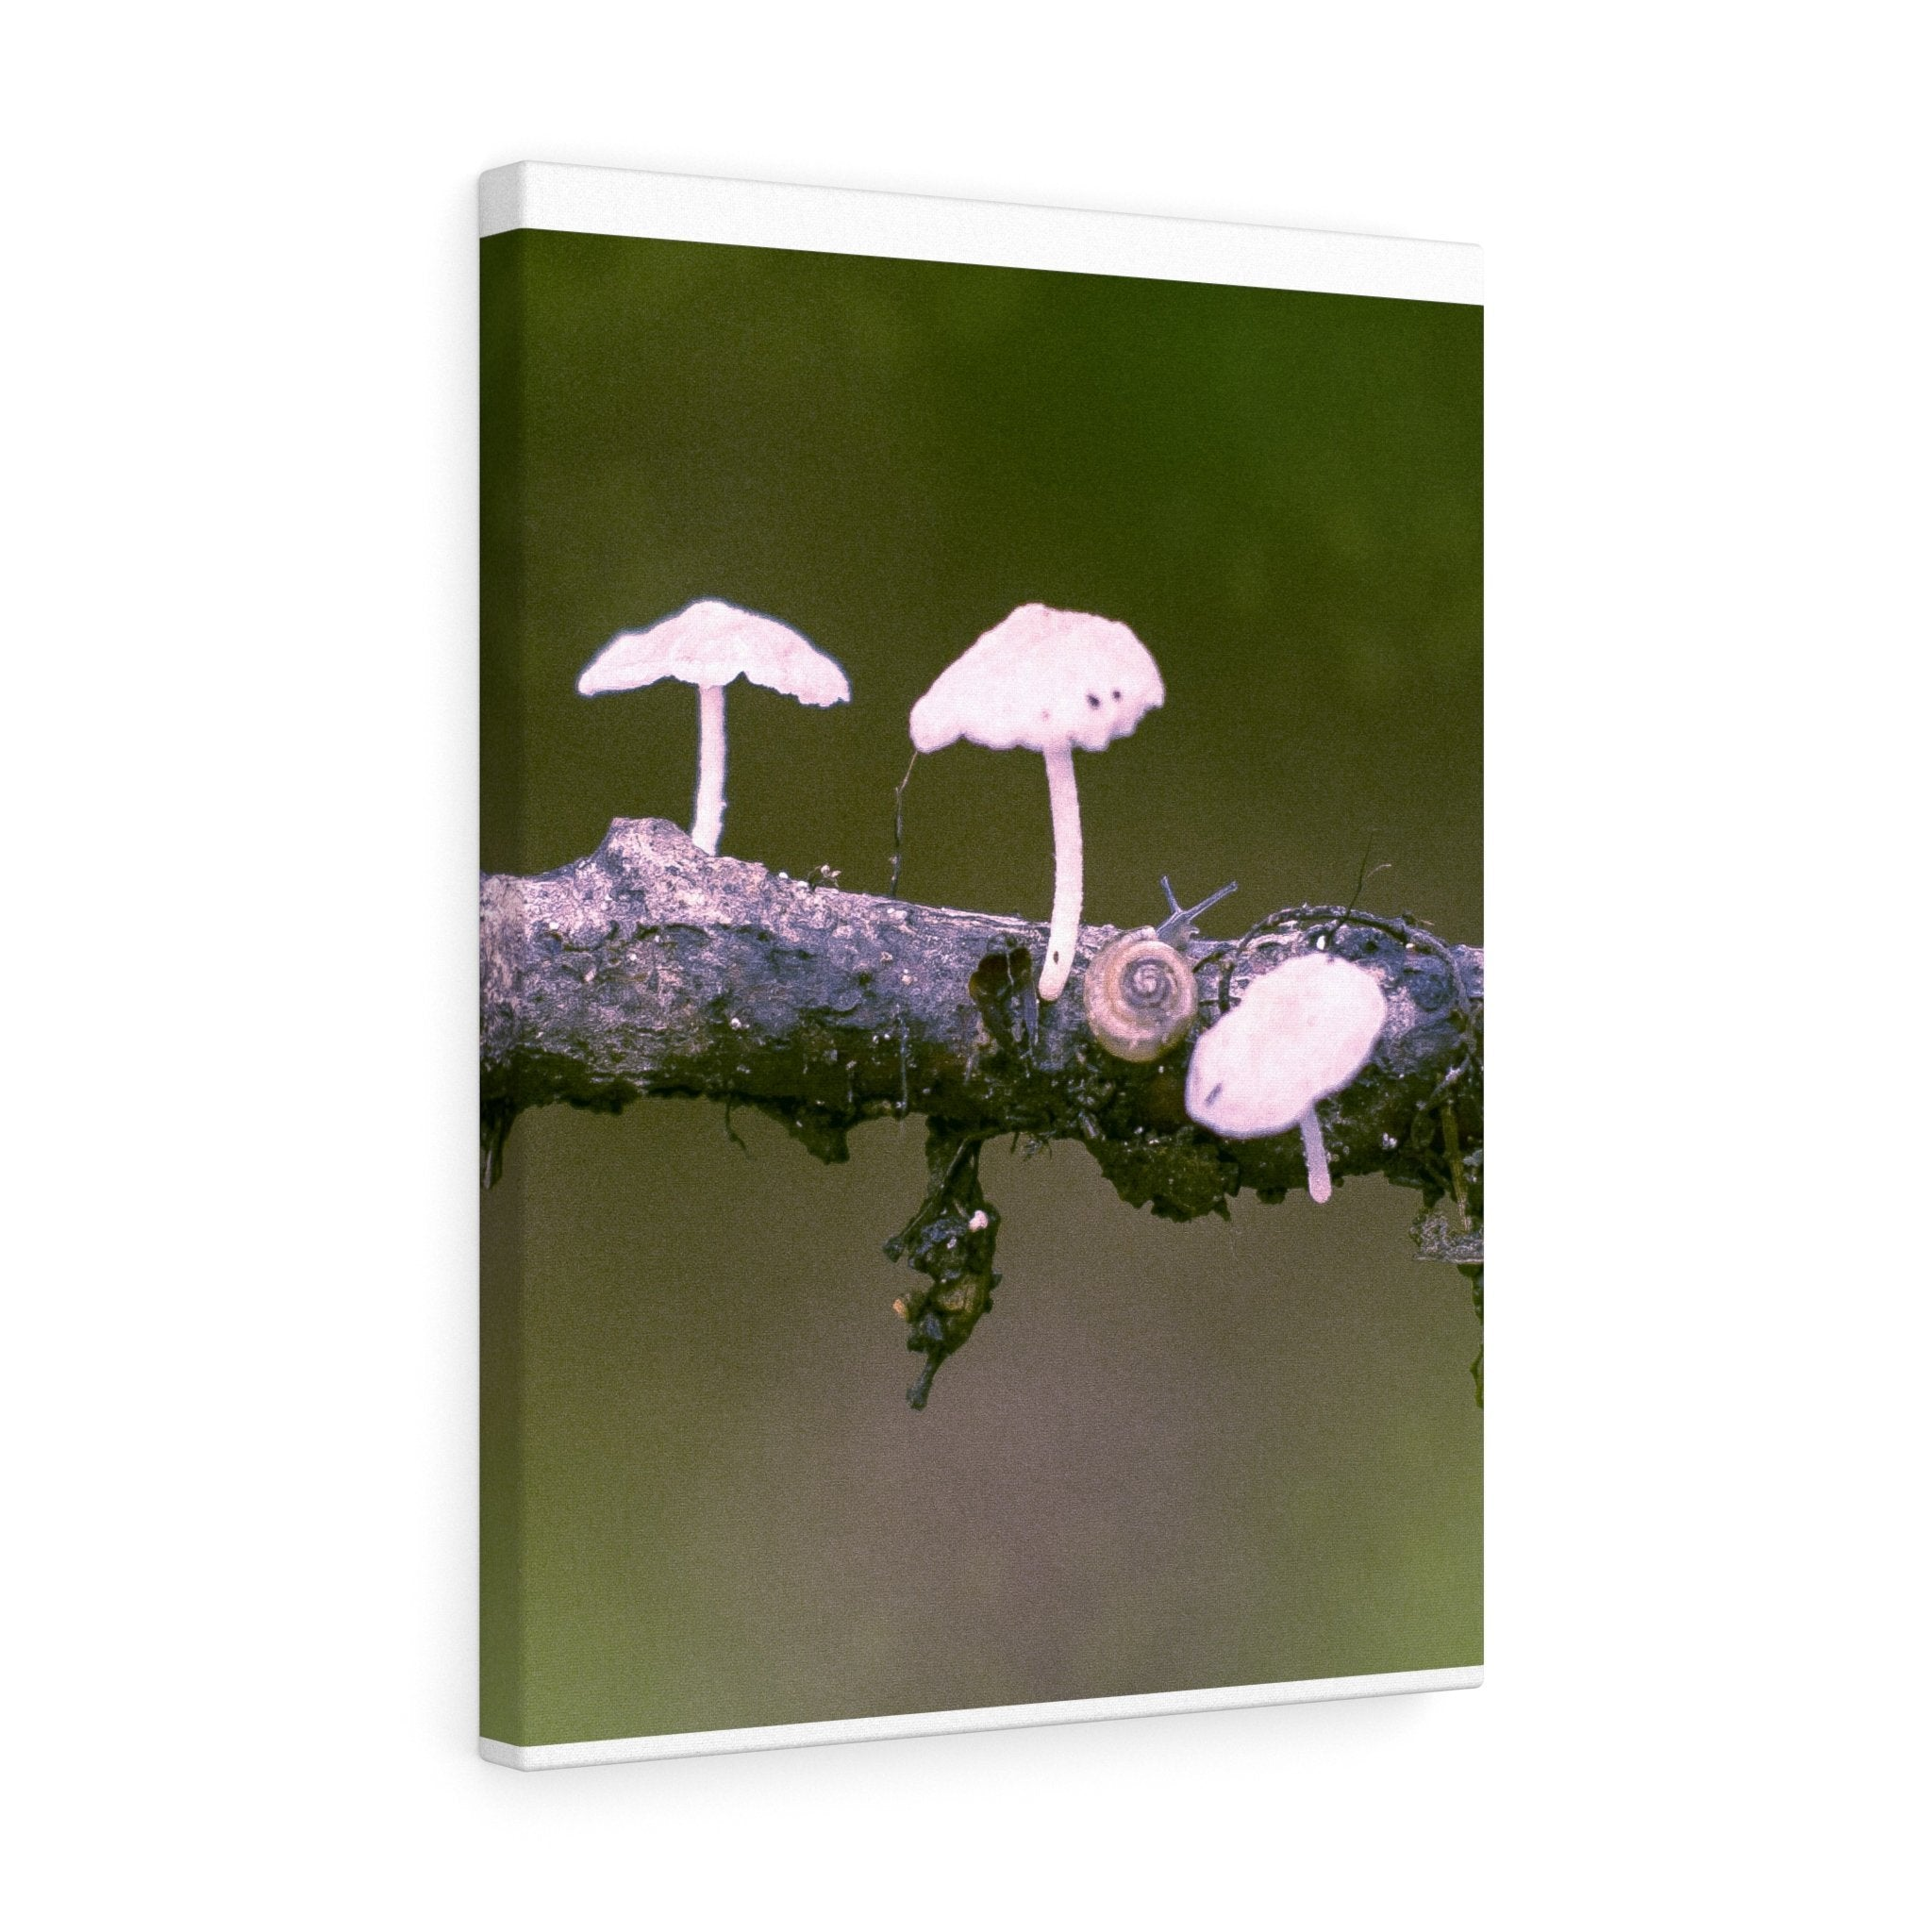 Snail on a Log Stretched canvas 18″ × 24″ / Stretched Canvas (1.5